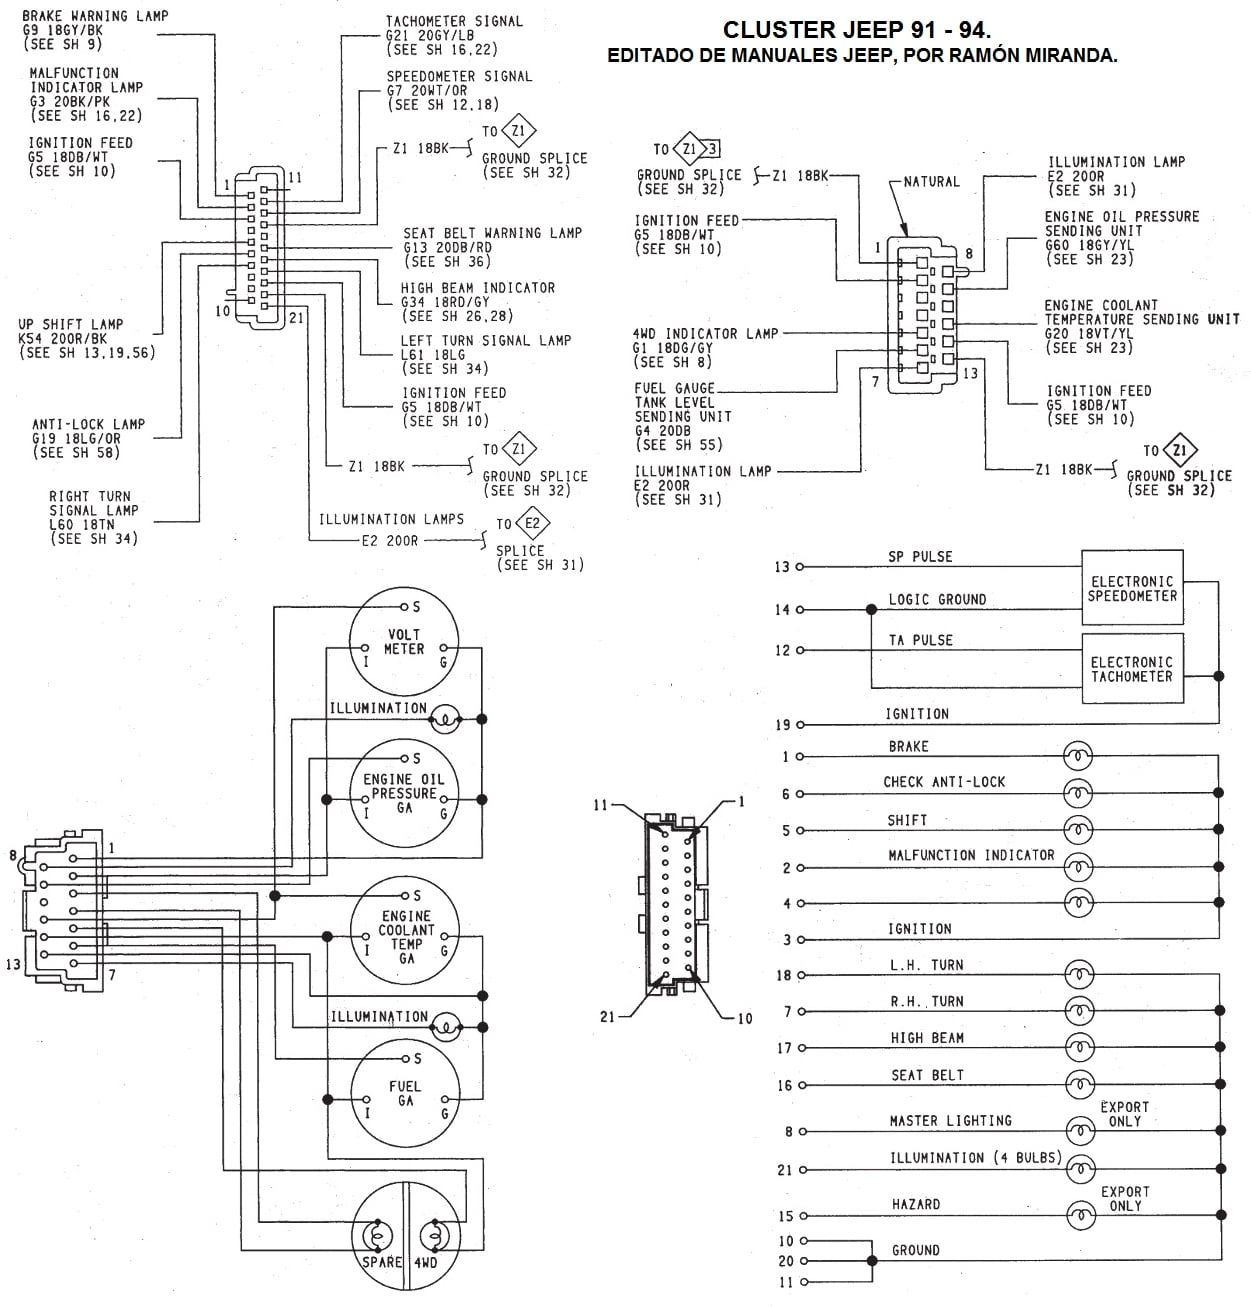 DIAGRAM] 2011 Wrangler Pcm Wiring Diagram FULL Version HD Quality Wiring  Diagram - PHSCHEMATIC9743.ARBREDESVOIX.FR